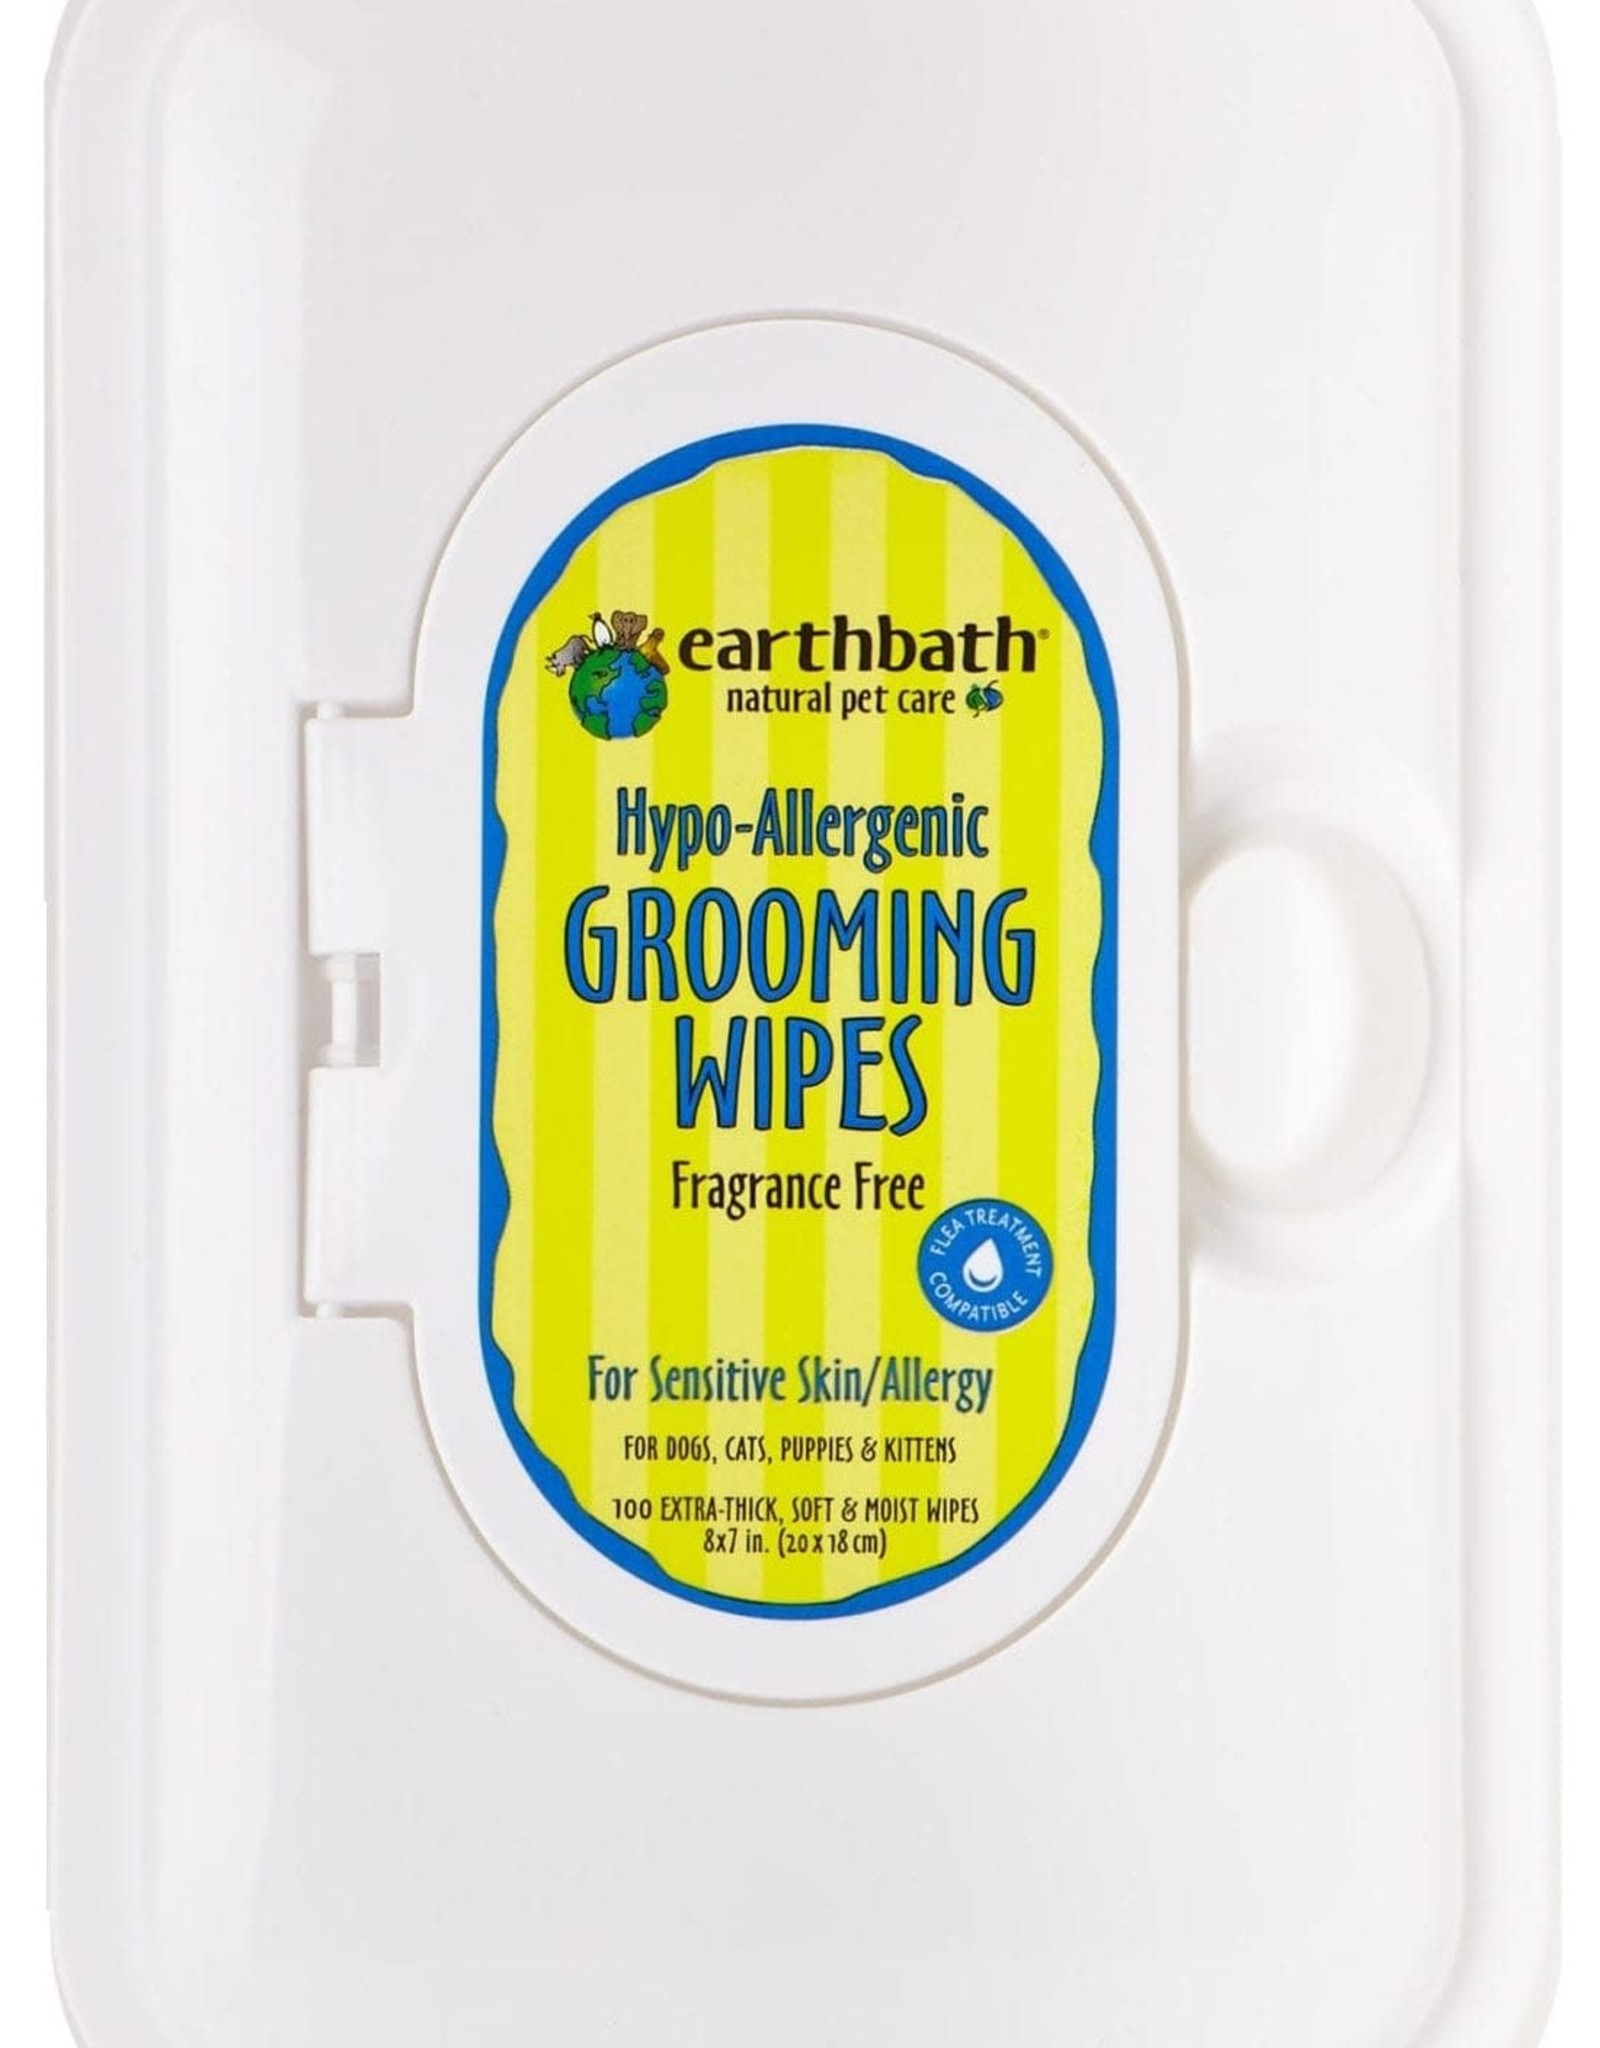 Earthbath Earthbath Grooming Wipes Hypo Allergenic Travel Size 28 Wipes